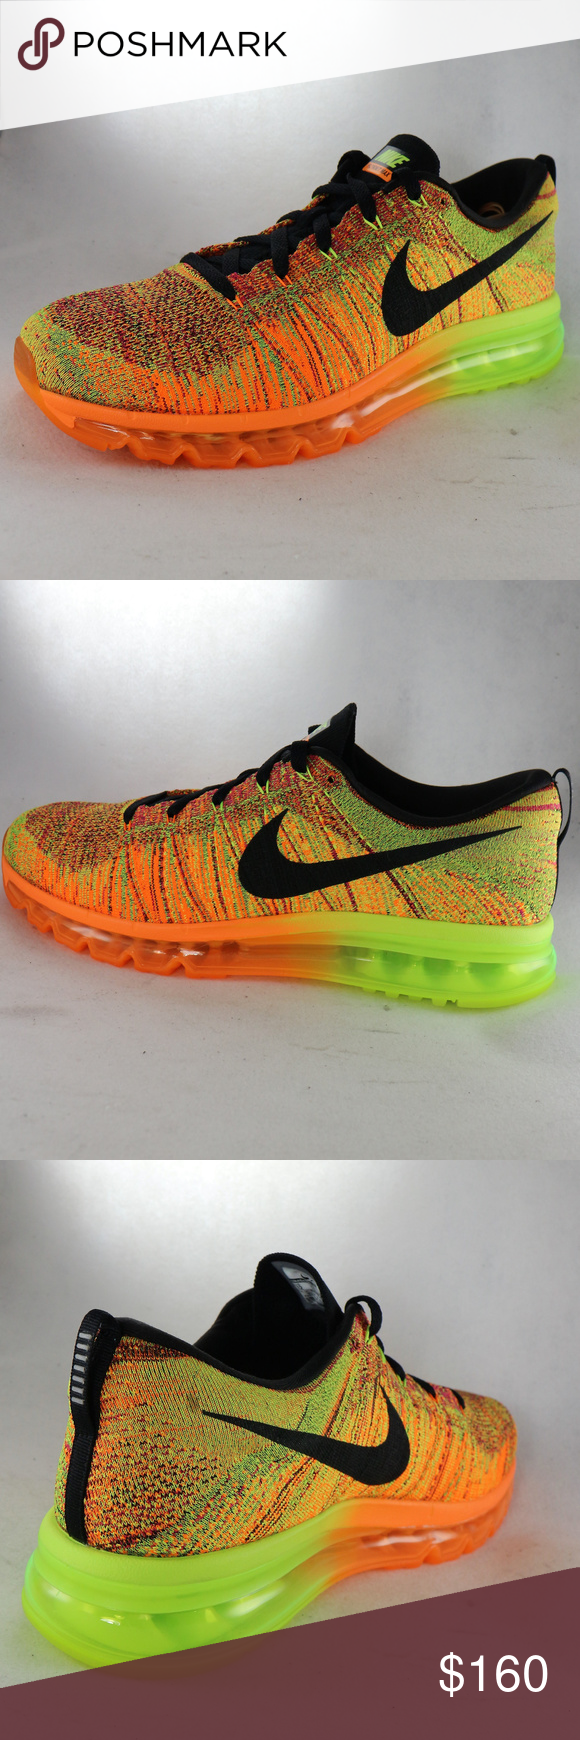 a16bb7f8385e authentic nike flyknit air max total orange volt sneakers like new  condition all around. absolutely